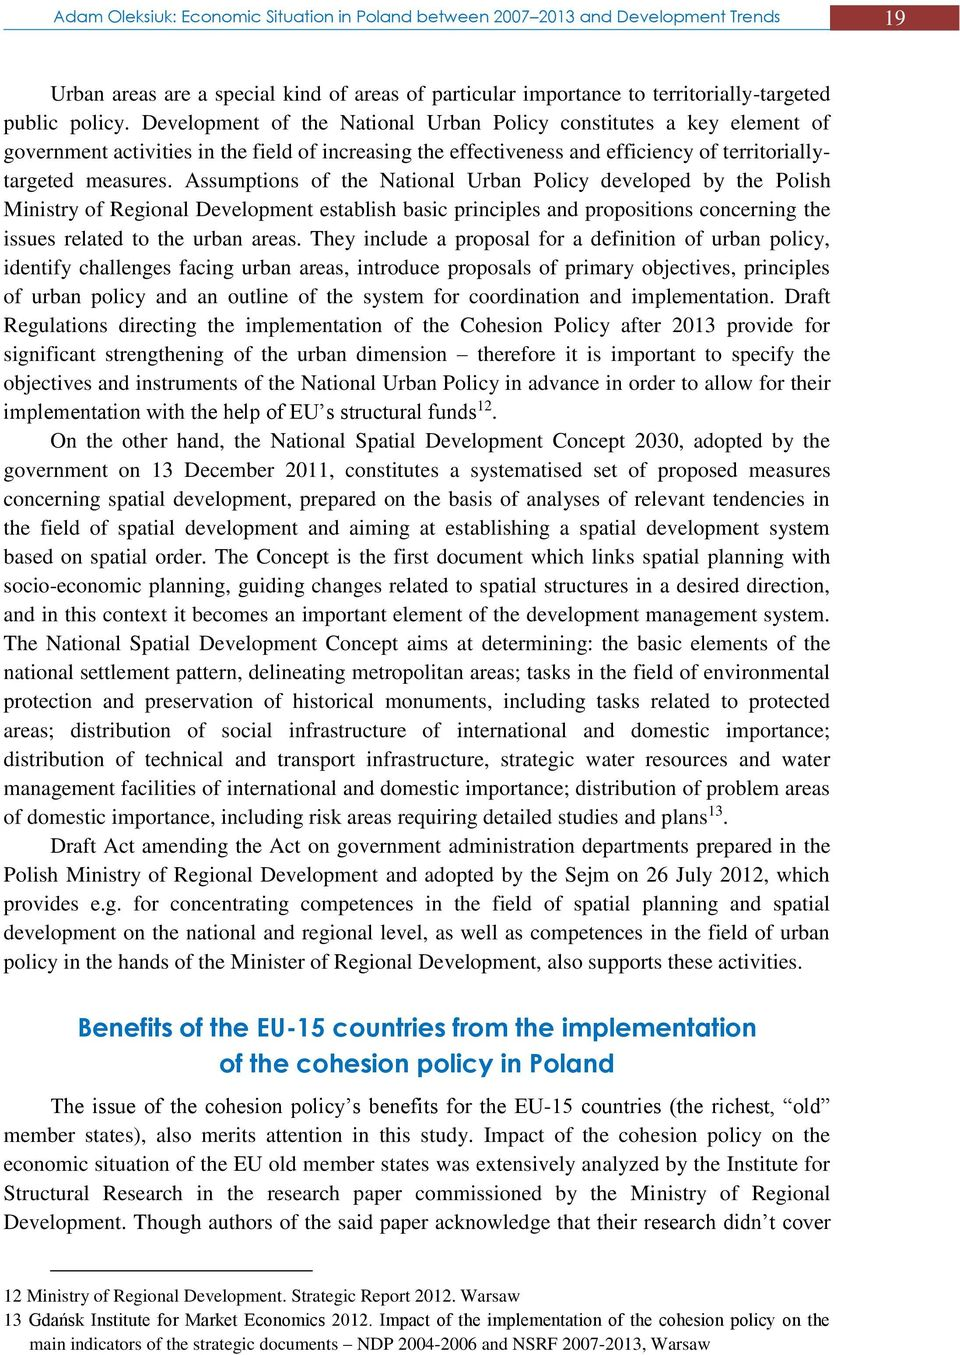 Assumptions of the National Urban Policy developed by the Polish Ministry of Regional Development establish basic principles and propositions concerning the issues related to the urban areas.